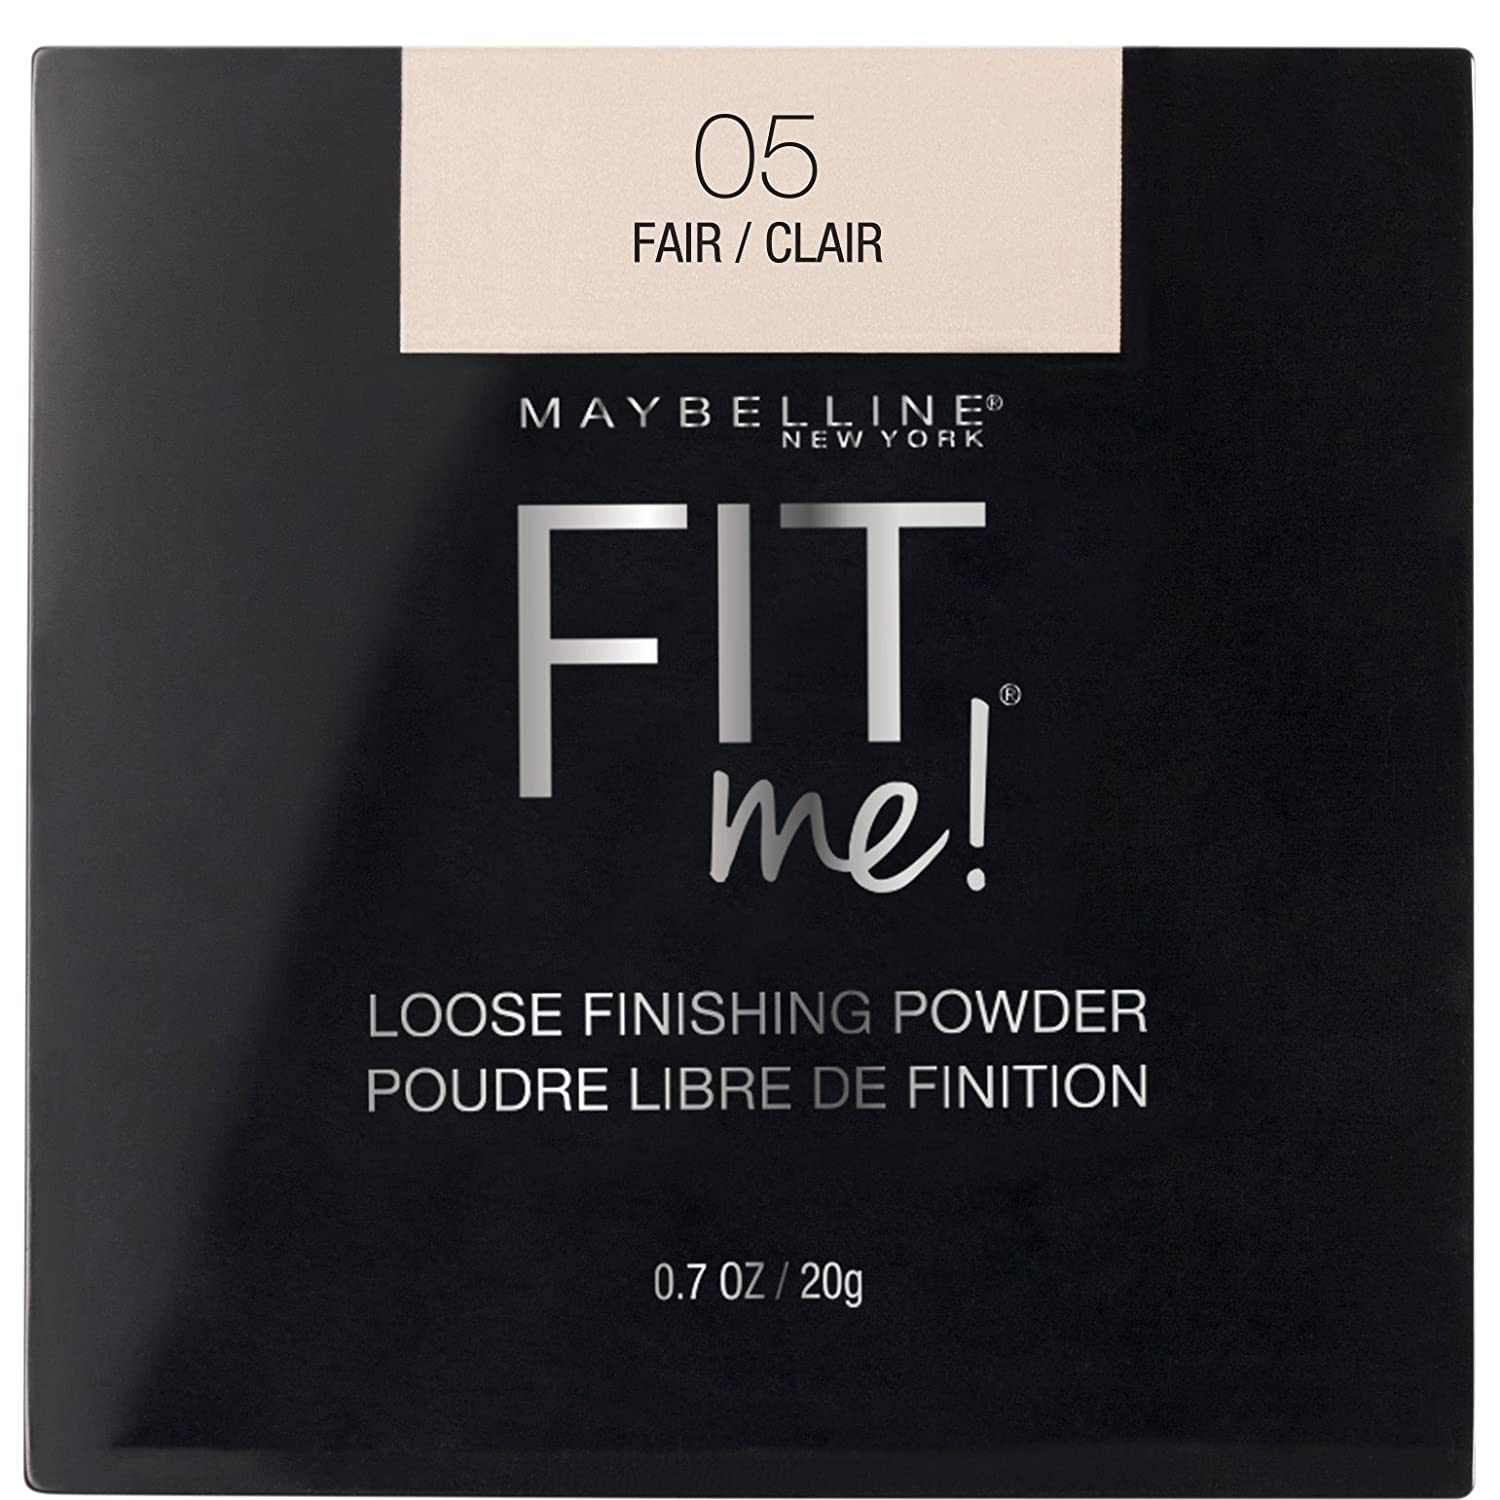 MAYBELLINE Fit Me! Loose Finishing Powder - Fair